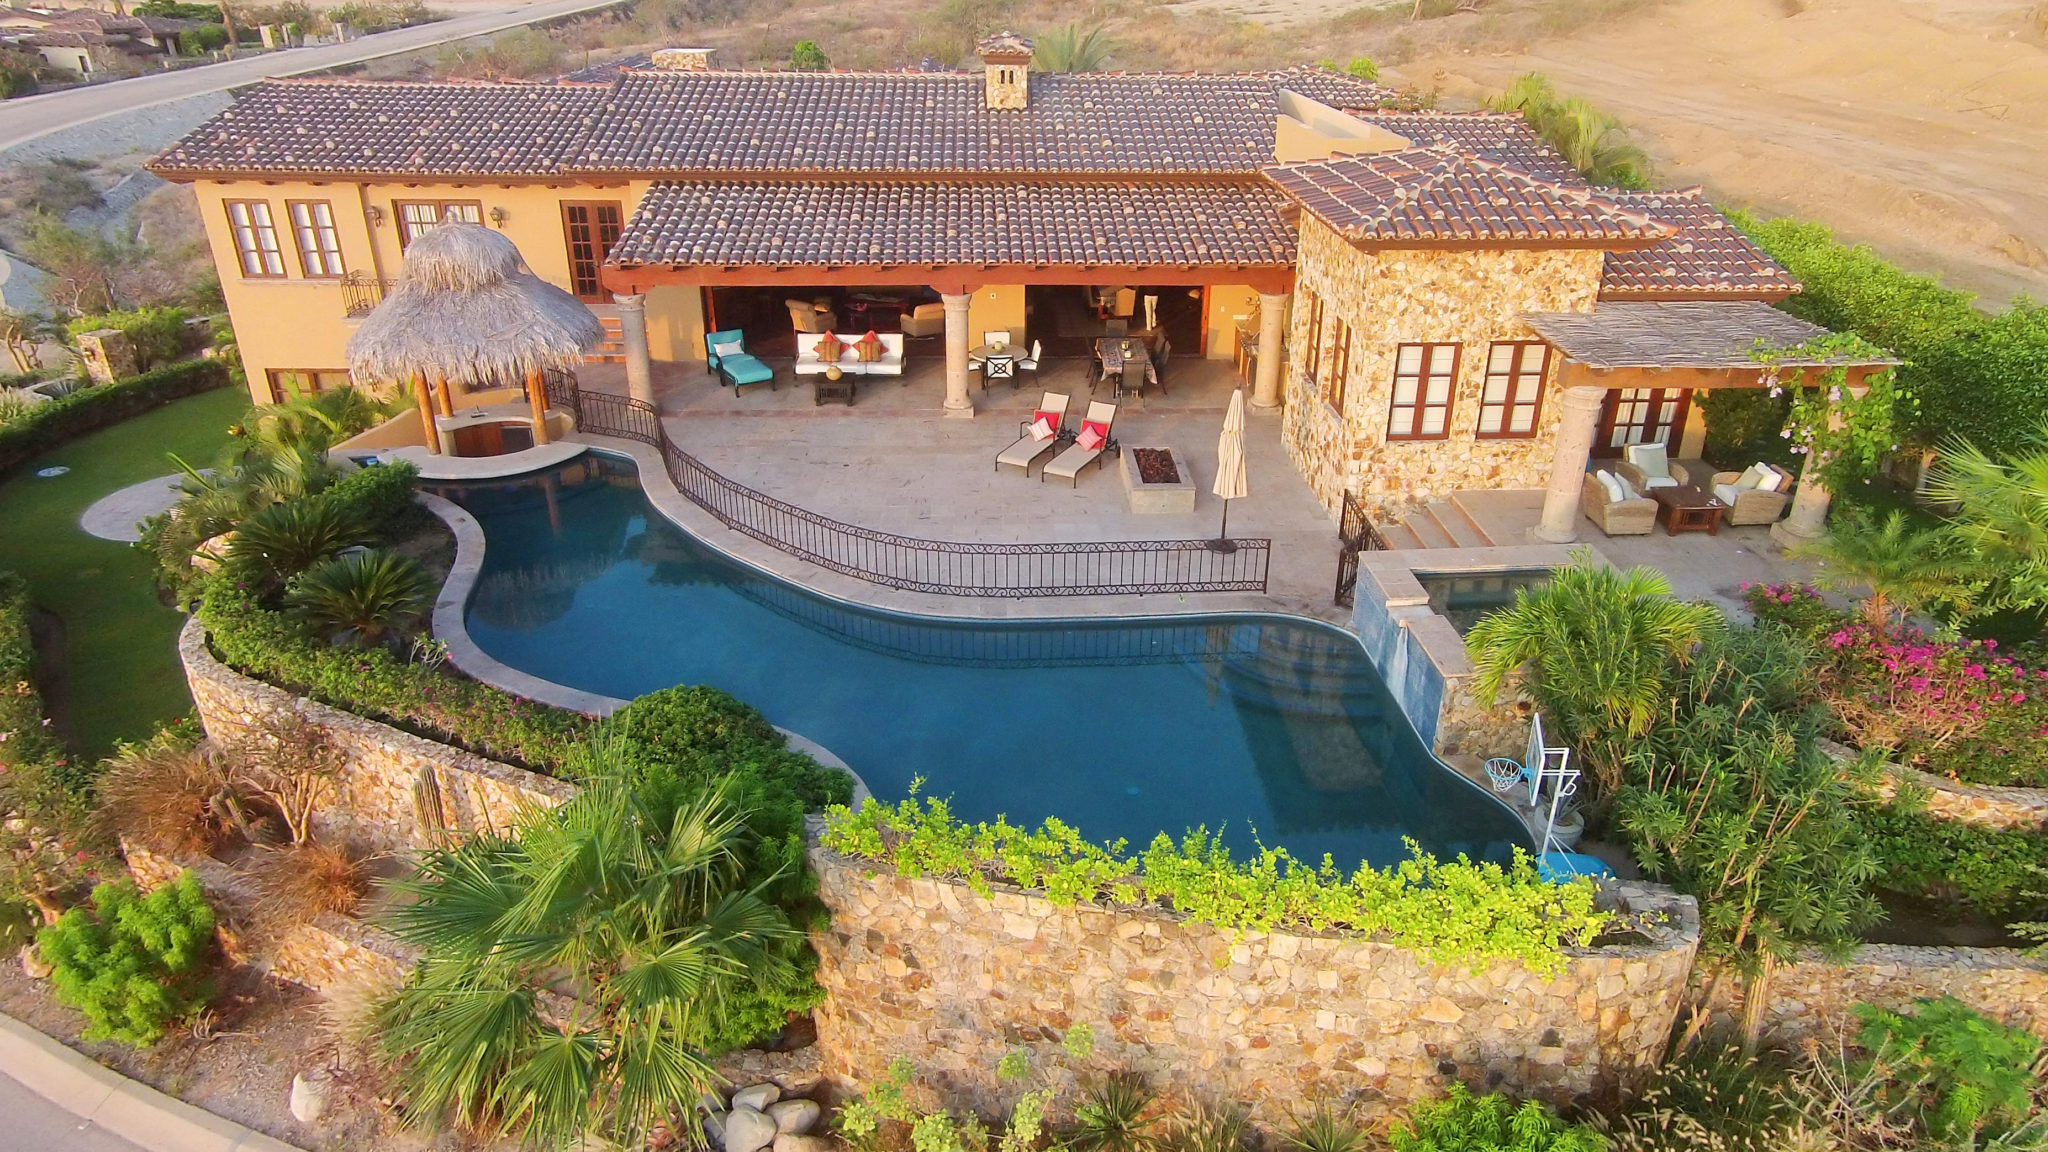 At this luxury villa, residents can enjoy cocktails at the swim-up tiki bar after a round of golf at Mexico's No. 1 rated course.